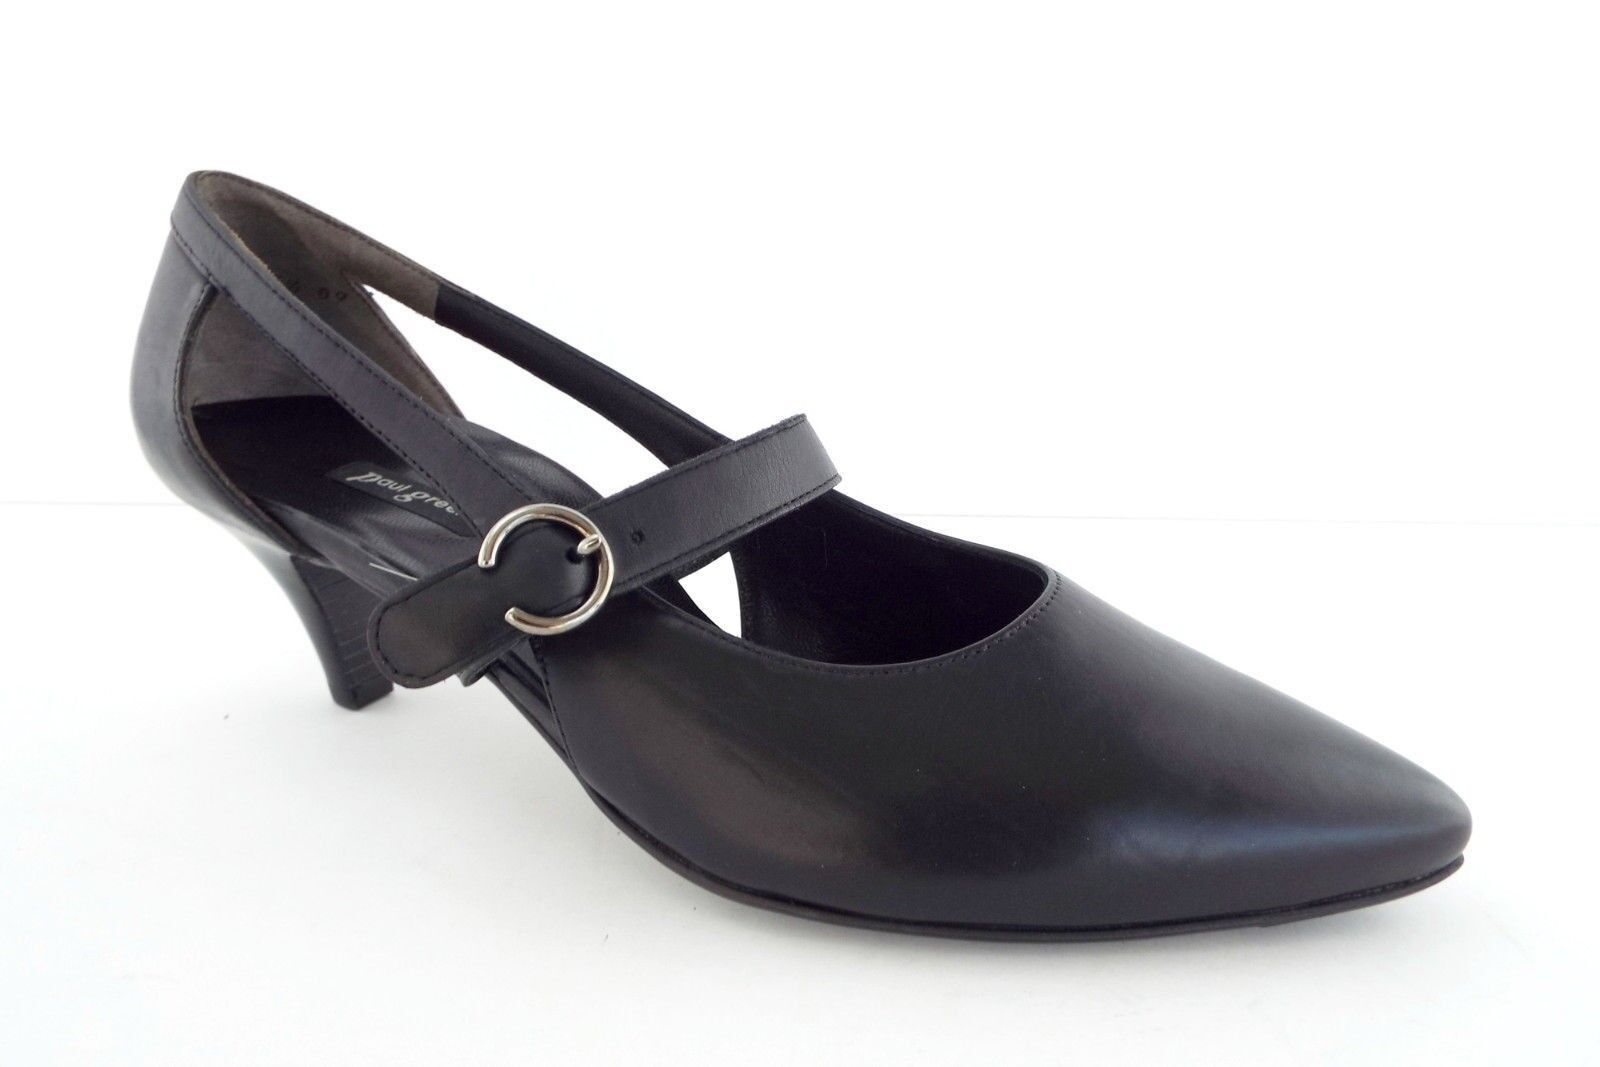 Pre owned in very good condition Paul green womans pumps pumps pumps black size 5.5 U.S. f42b52